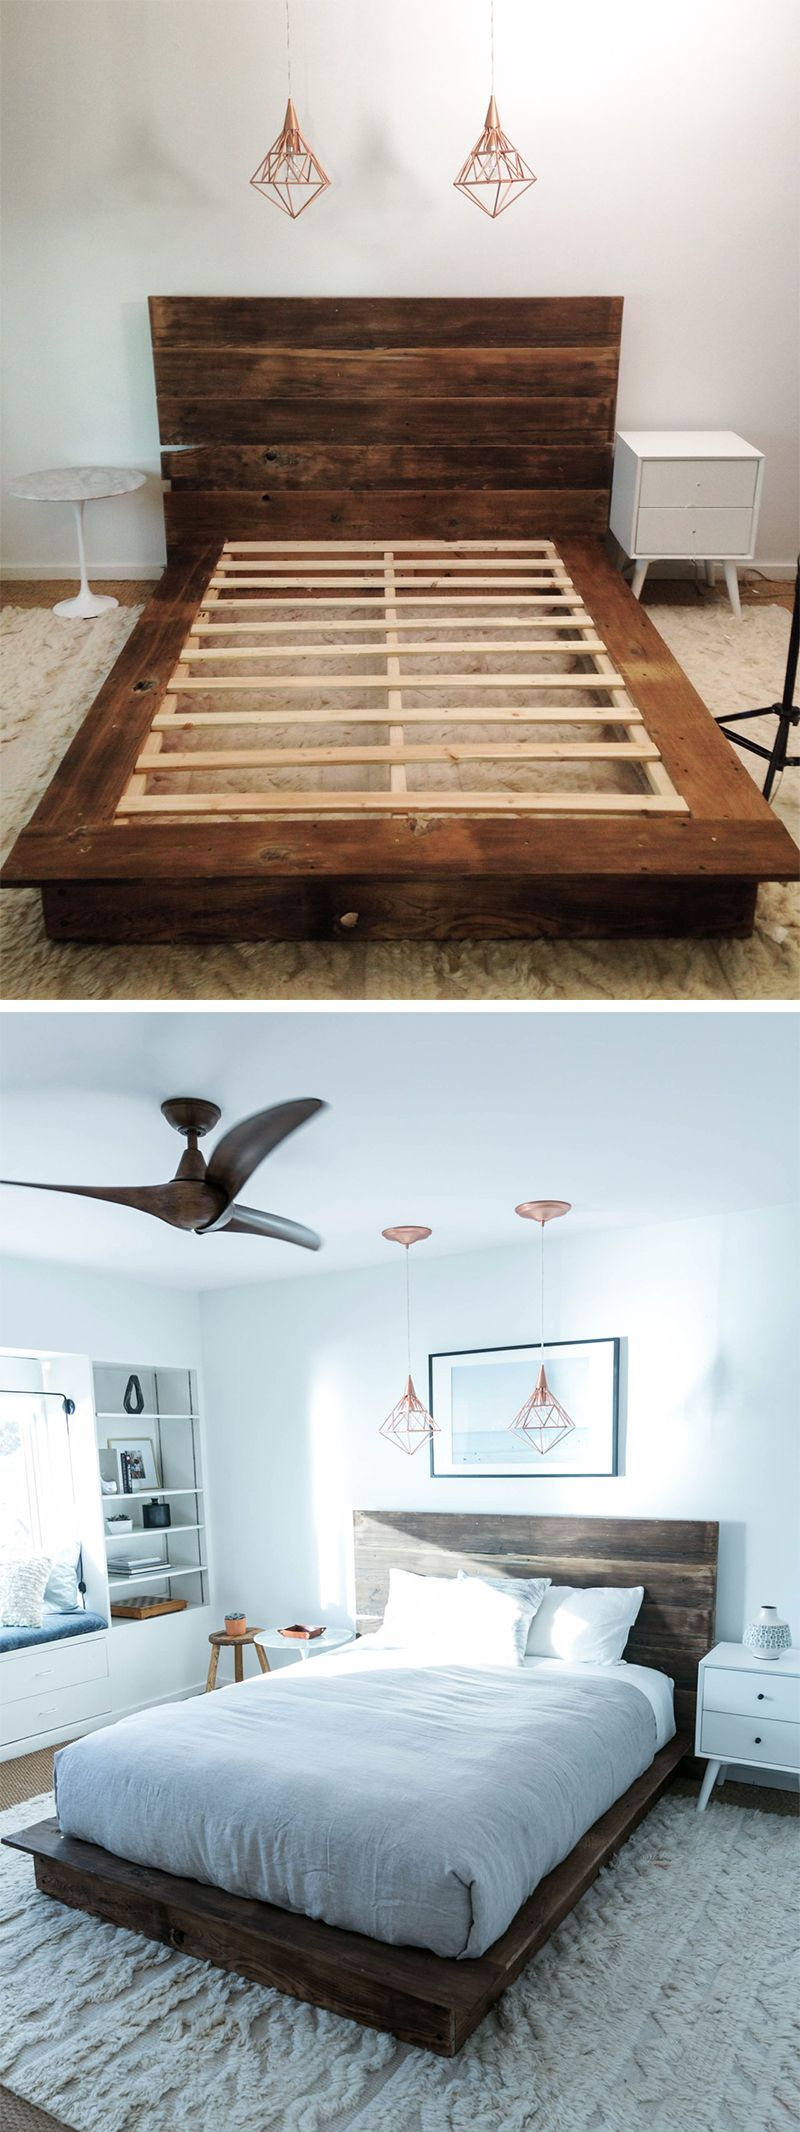 diy reclaimed wood platform bed wood platform bed